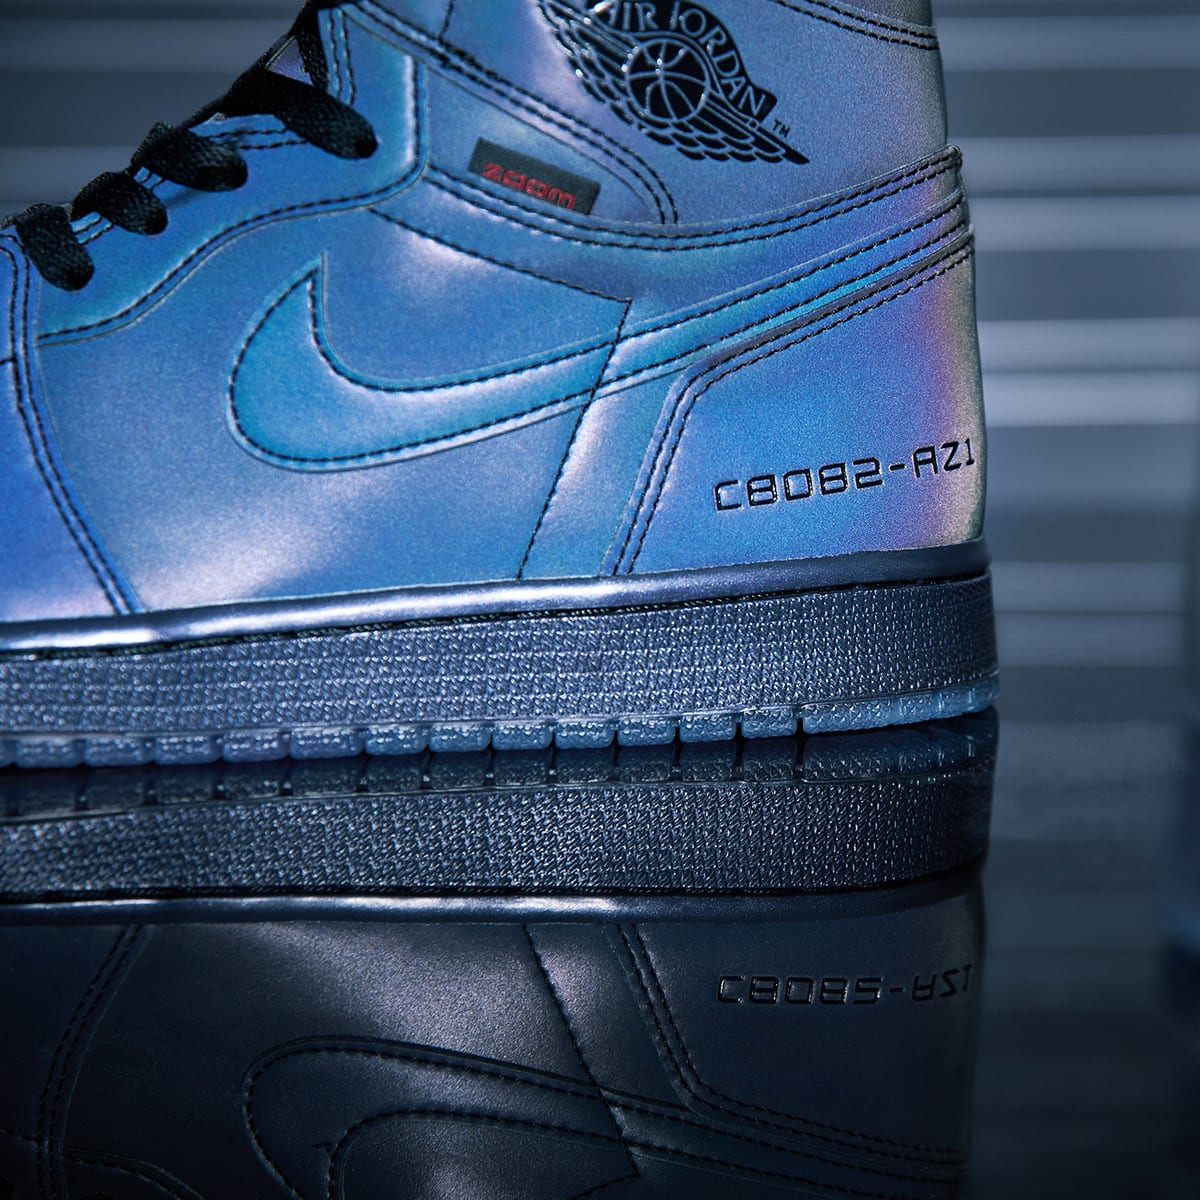 End Features Air Jordan 1 High Zoom Fearless Register Now On